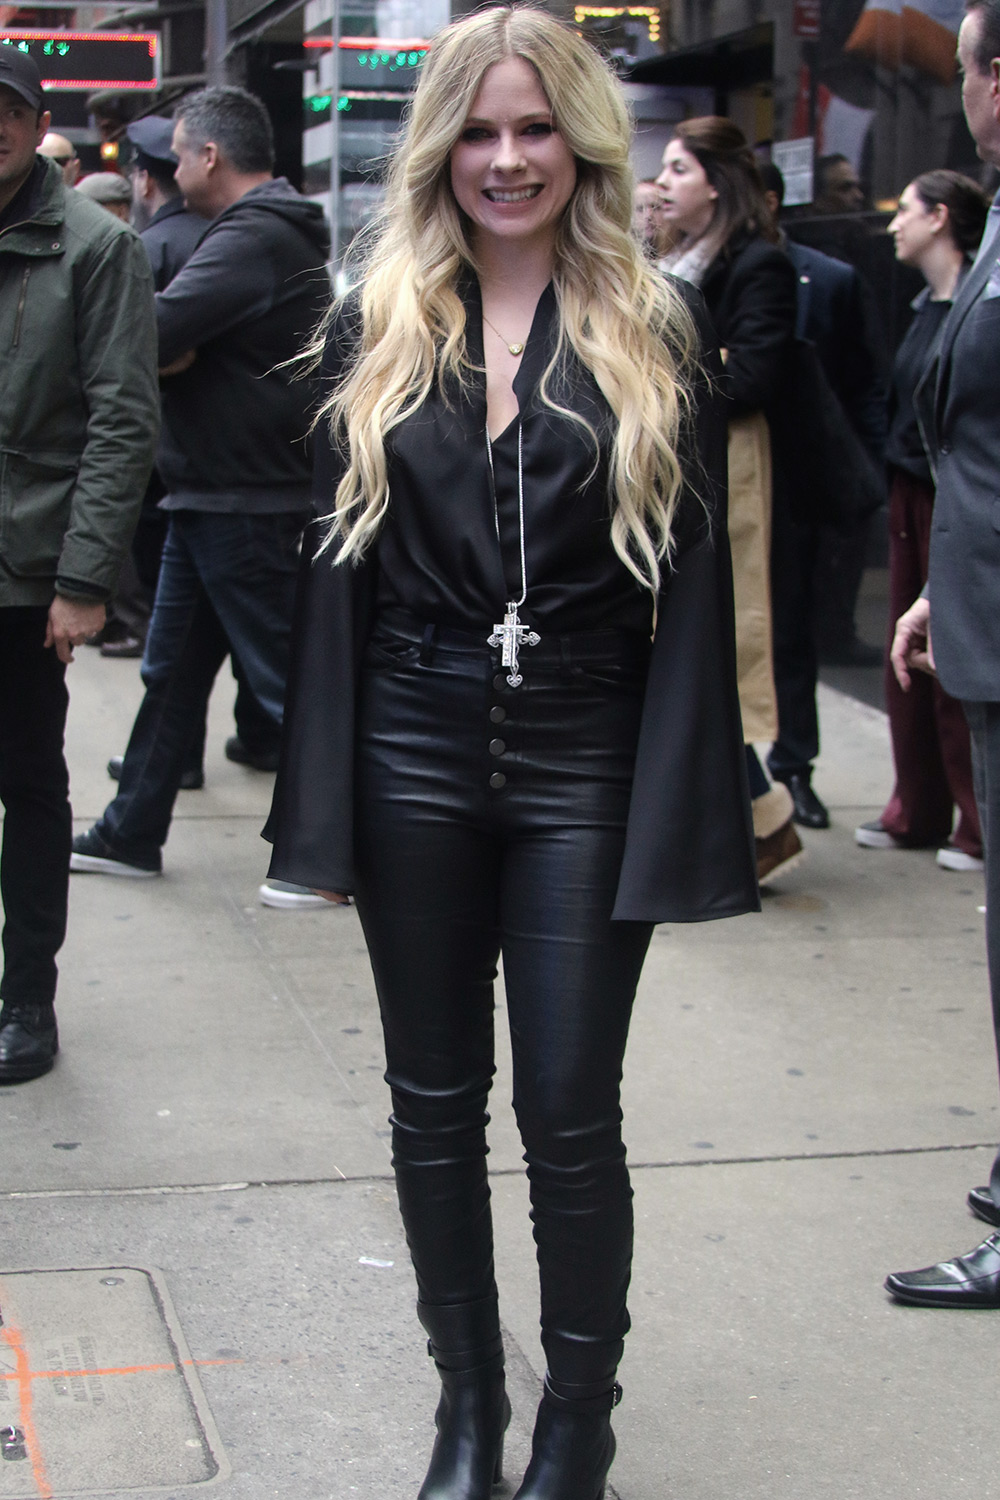 Avril Lavigne outside 'Good Morning America'